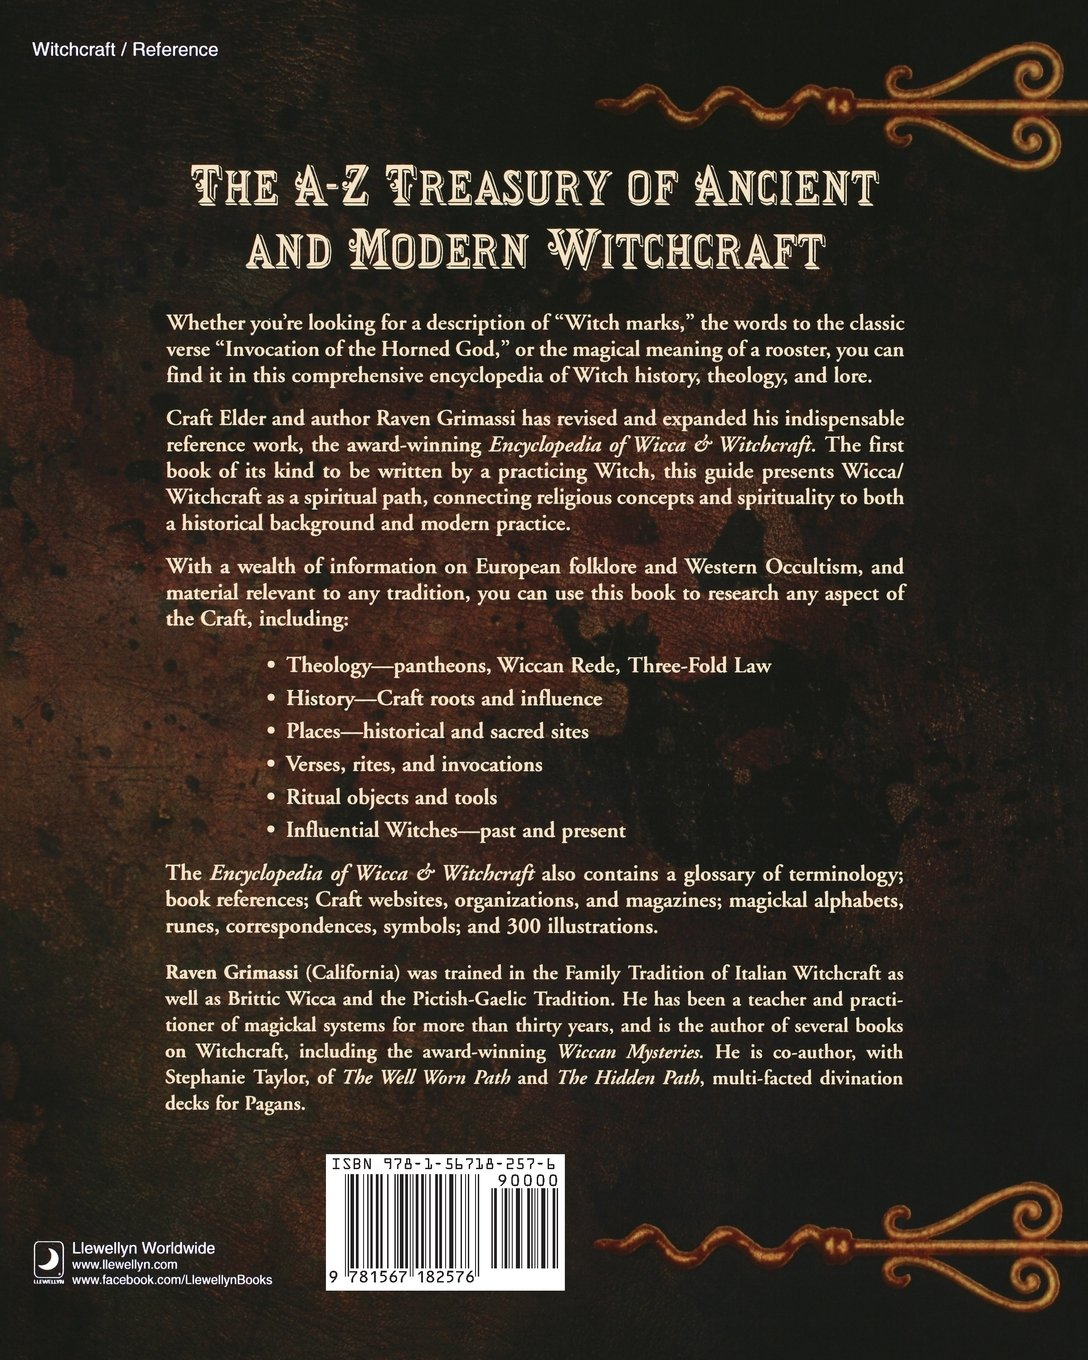 an essay on the wicca a modern pagan witchcraft religion View and download witchcraft essays examples also discover topics, titles, outlines, thesis statements, and conclusions for your witchcraft essay.